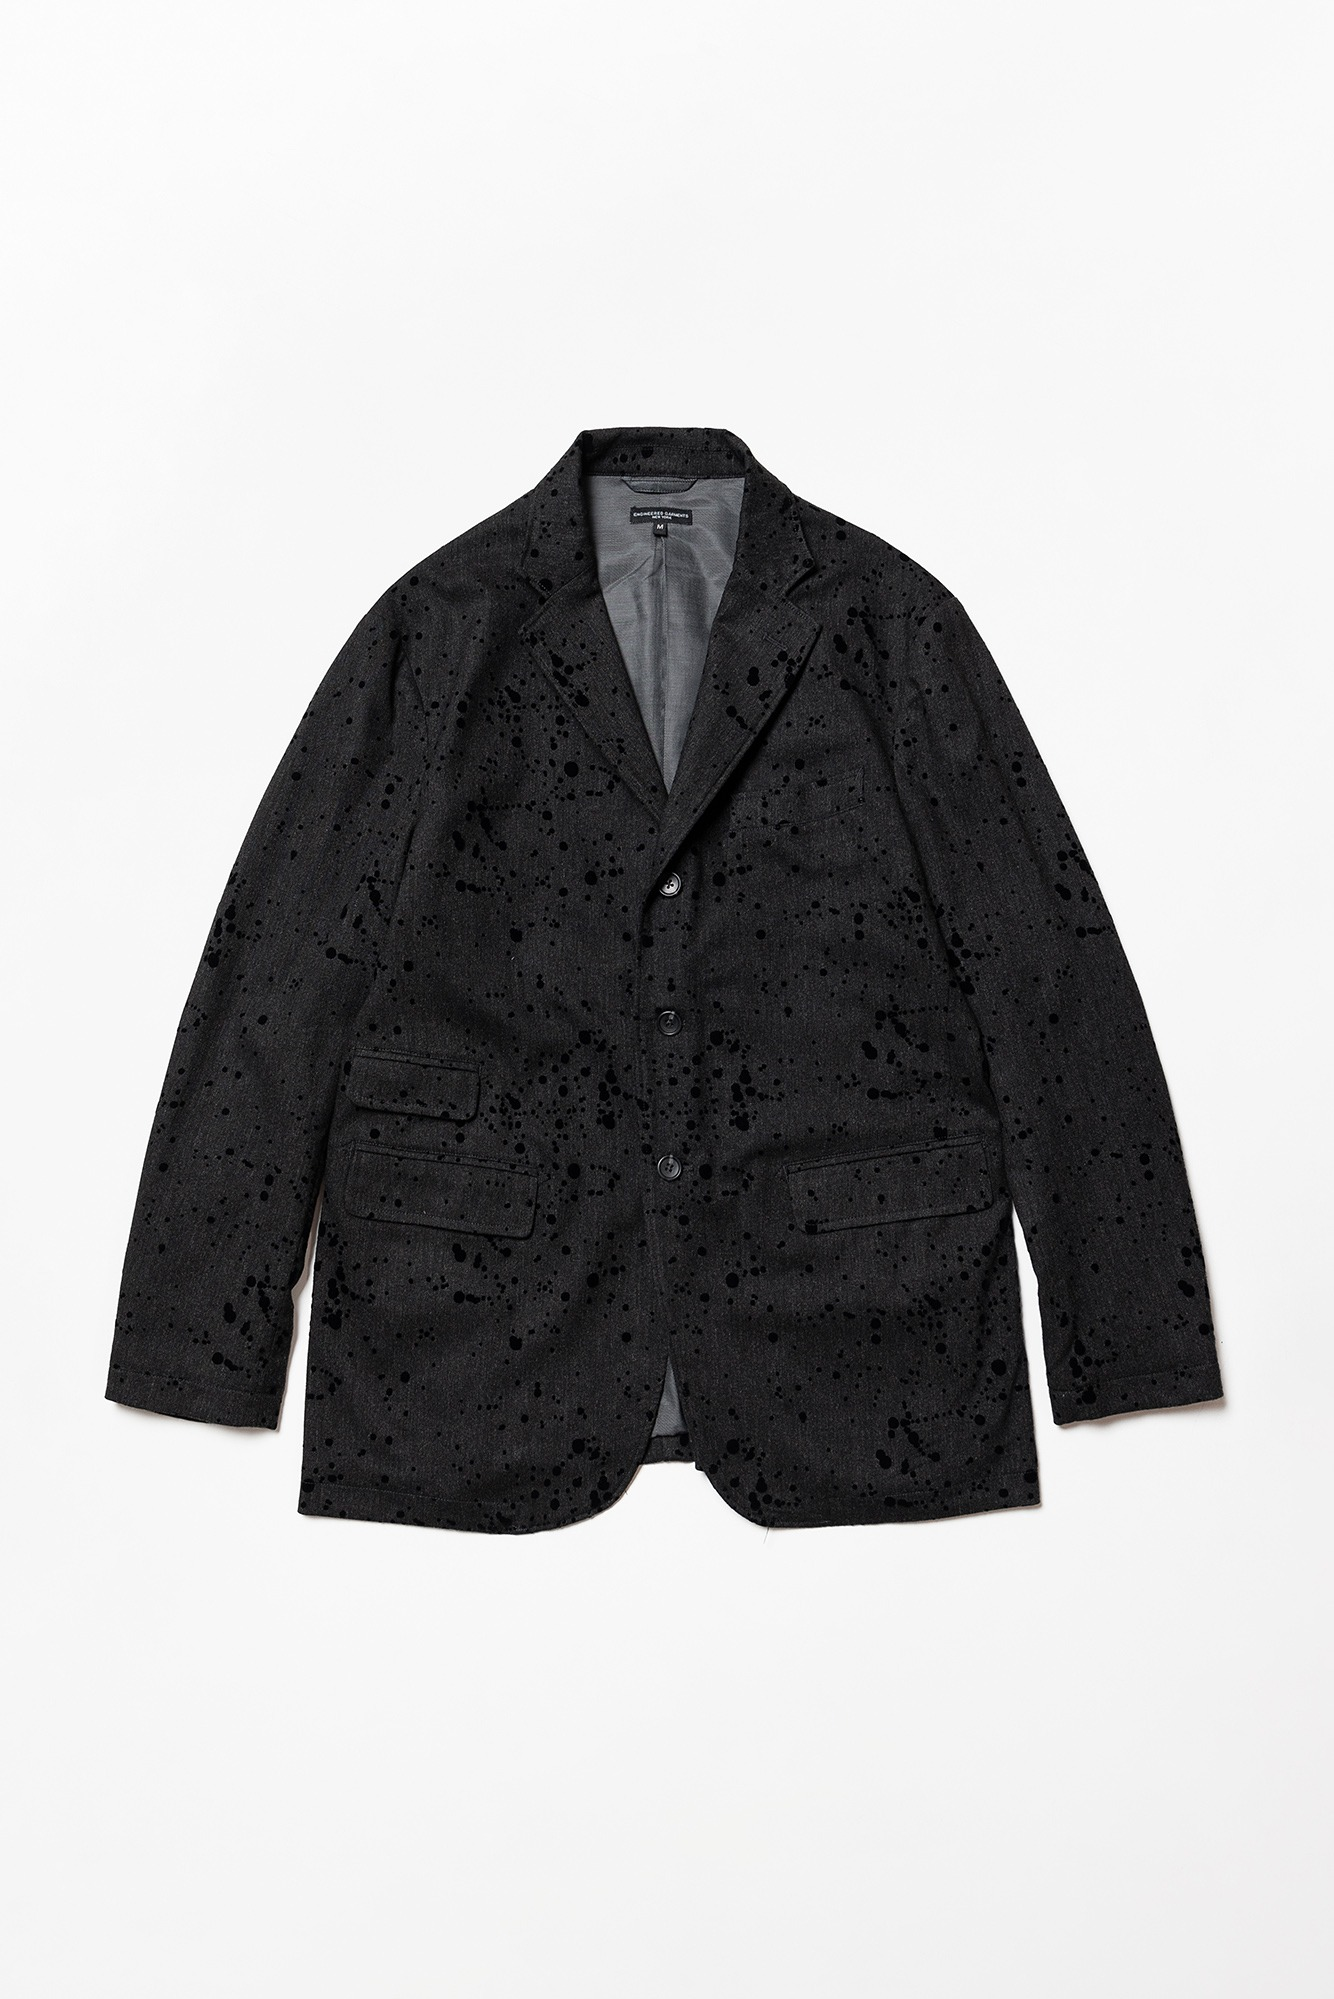 "ENGINEERED GARMENTS Lawrence Jacket ""Charcoal Rayon Wool Flocking Splatter Print"""